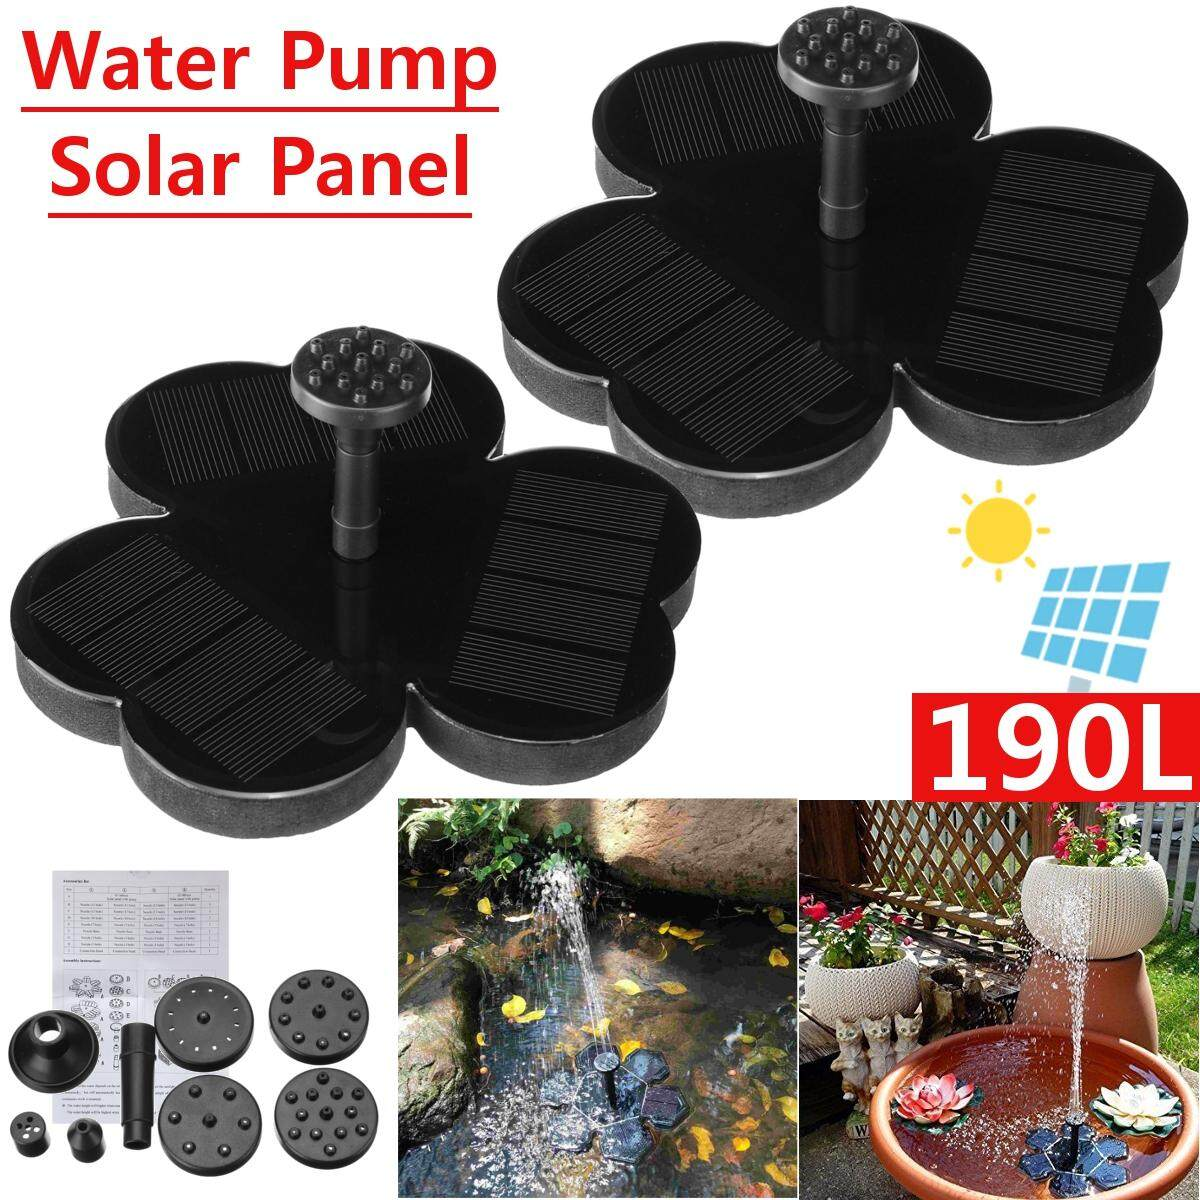 2Pcs Solar Panel Garden Watering Power Pool Fountain Floating Water Pump 190L